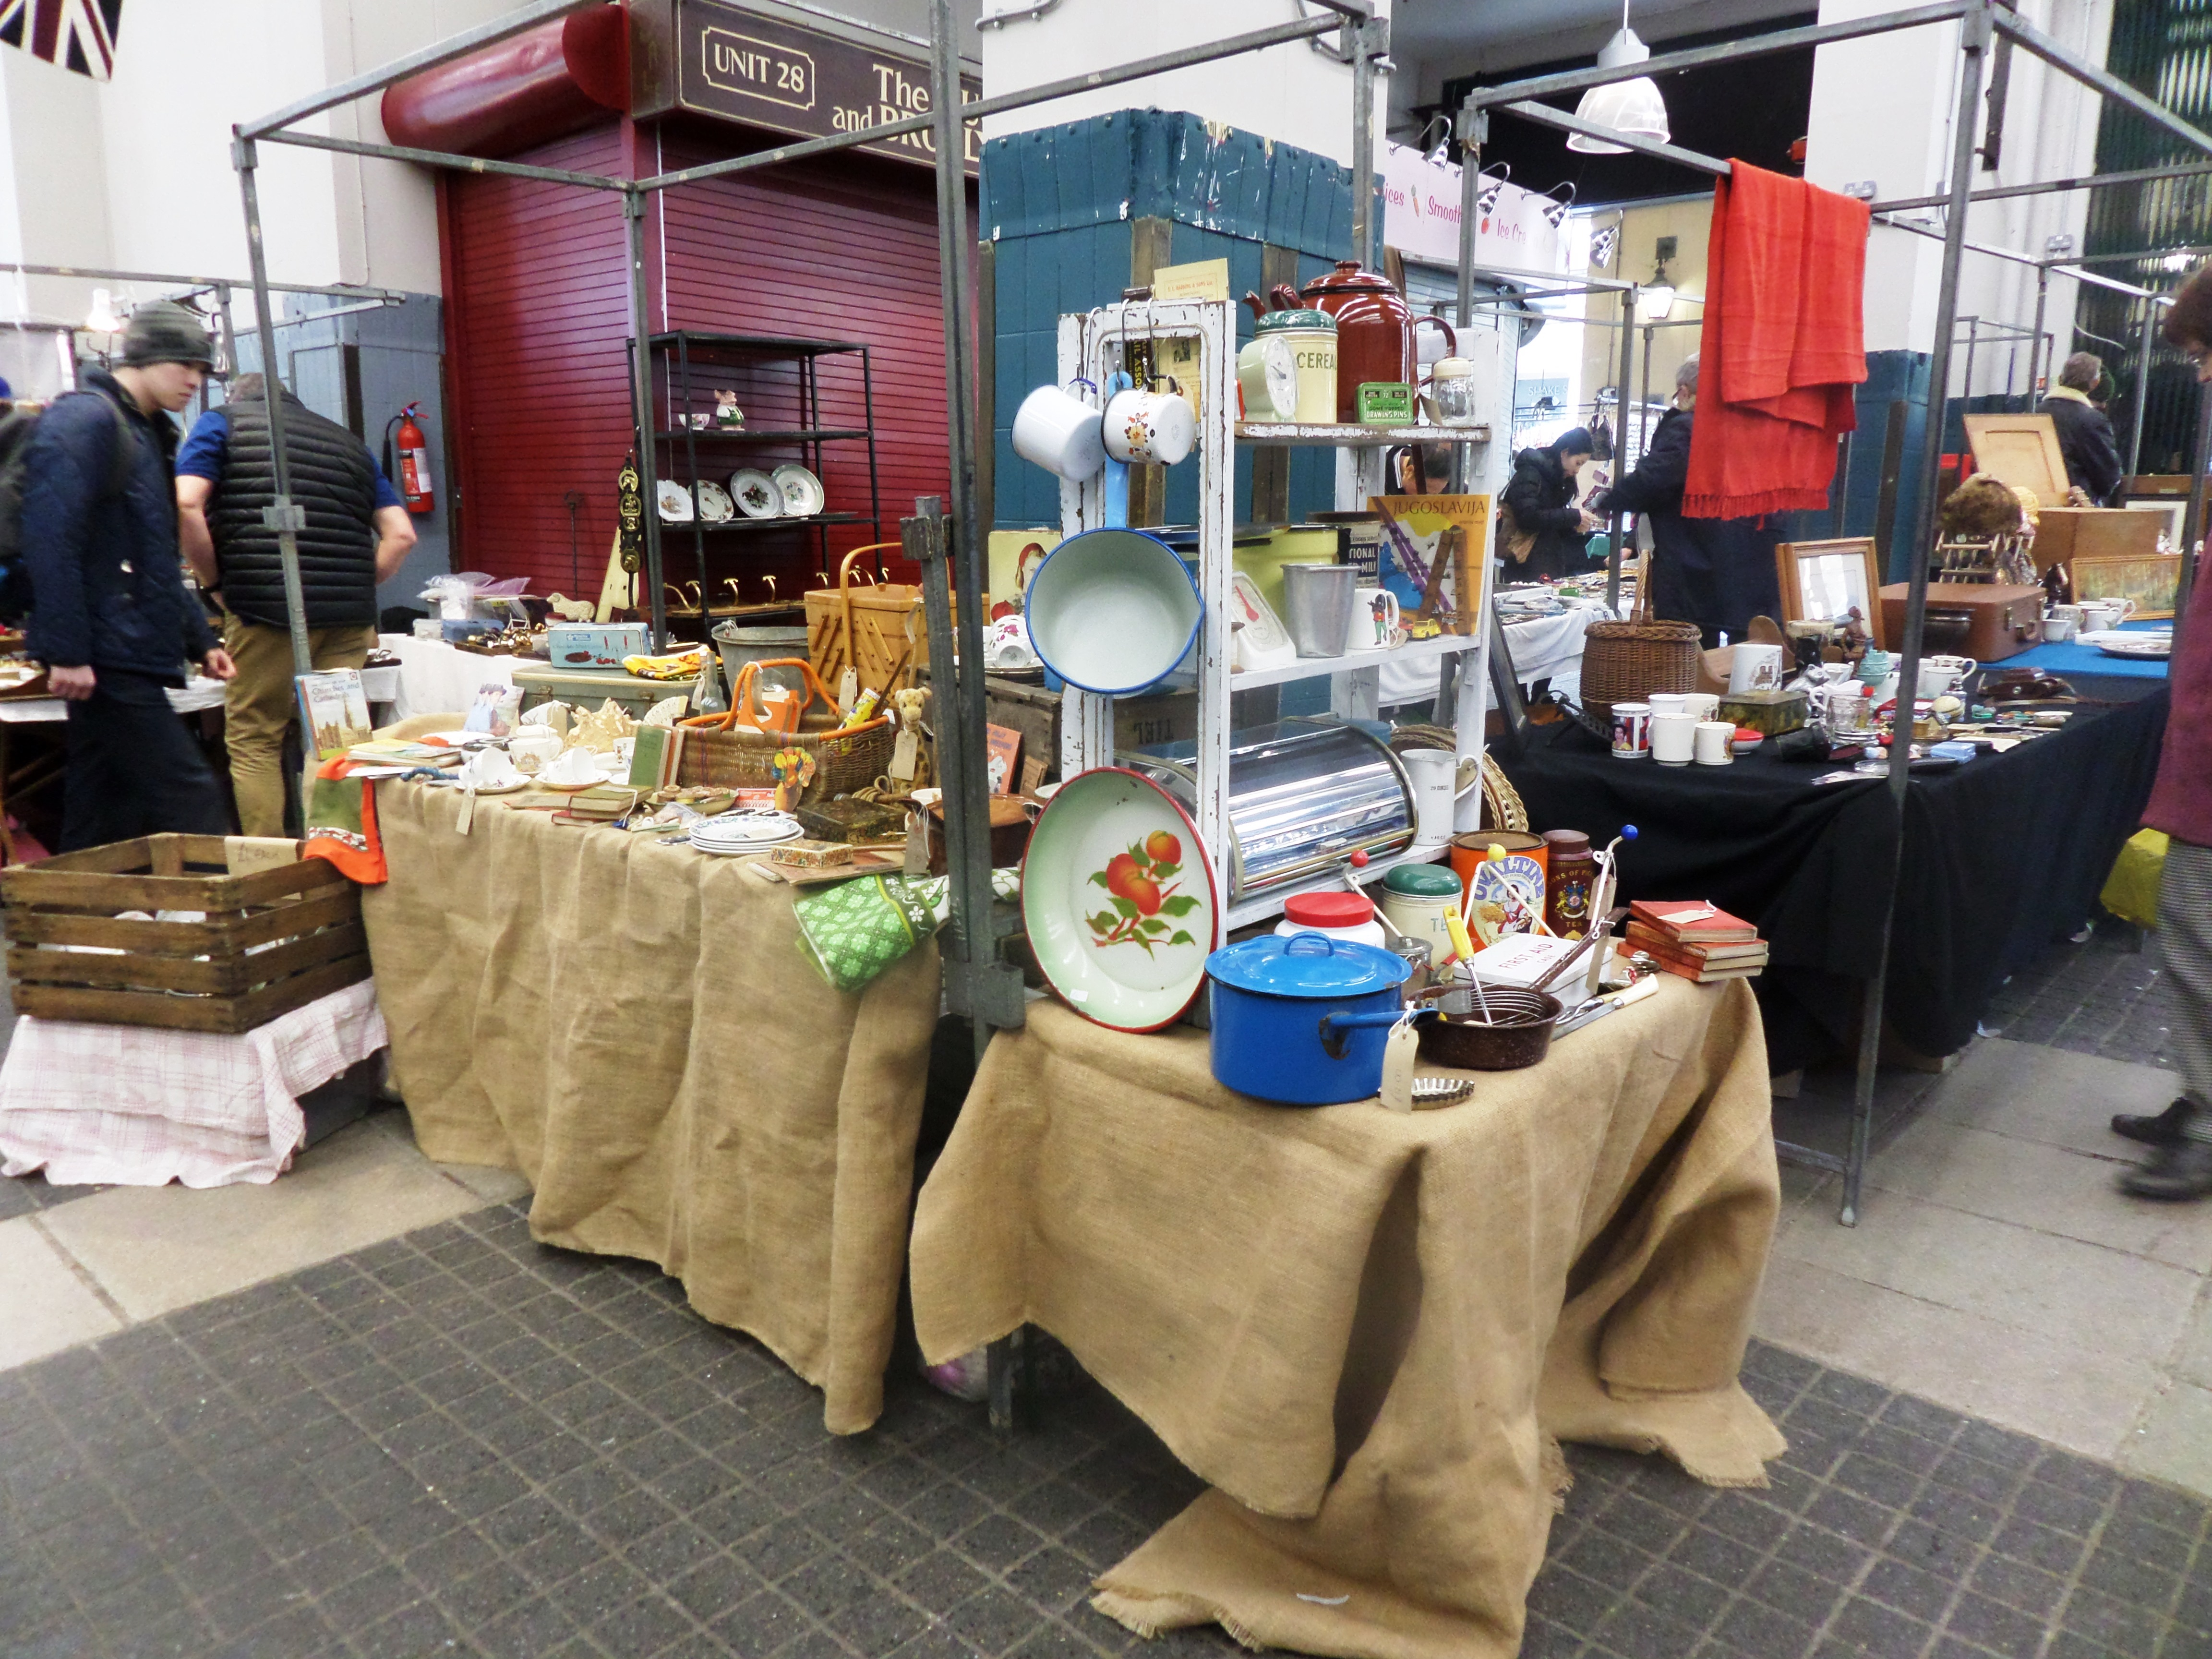 b2a3ab030f Homeware at the Antiques and Collectables Market Jubilee market Covent  Garden